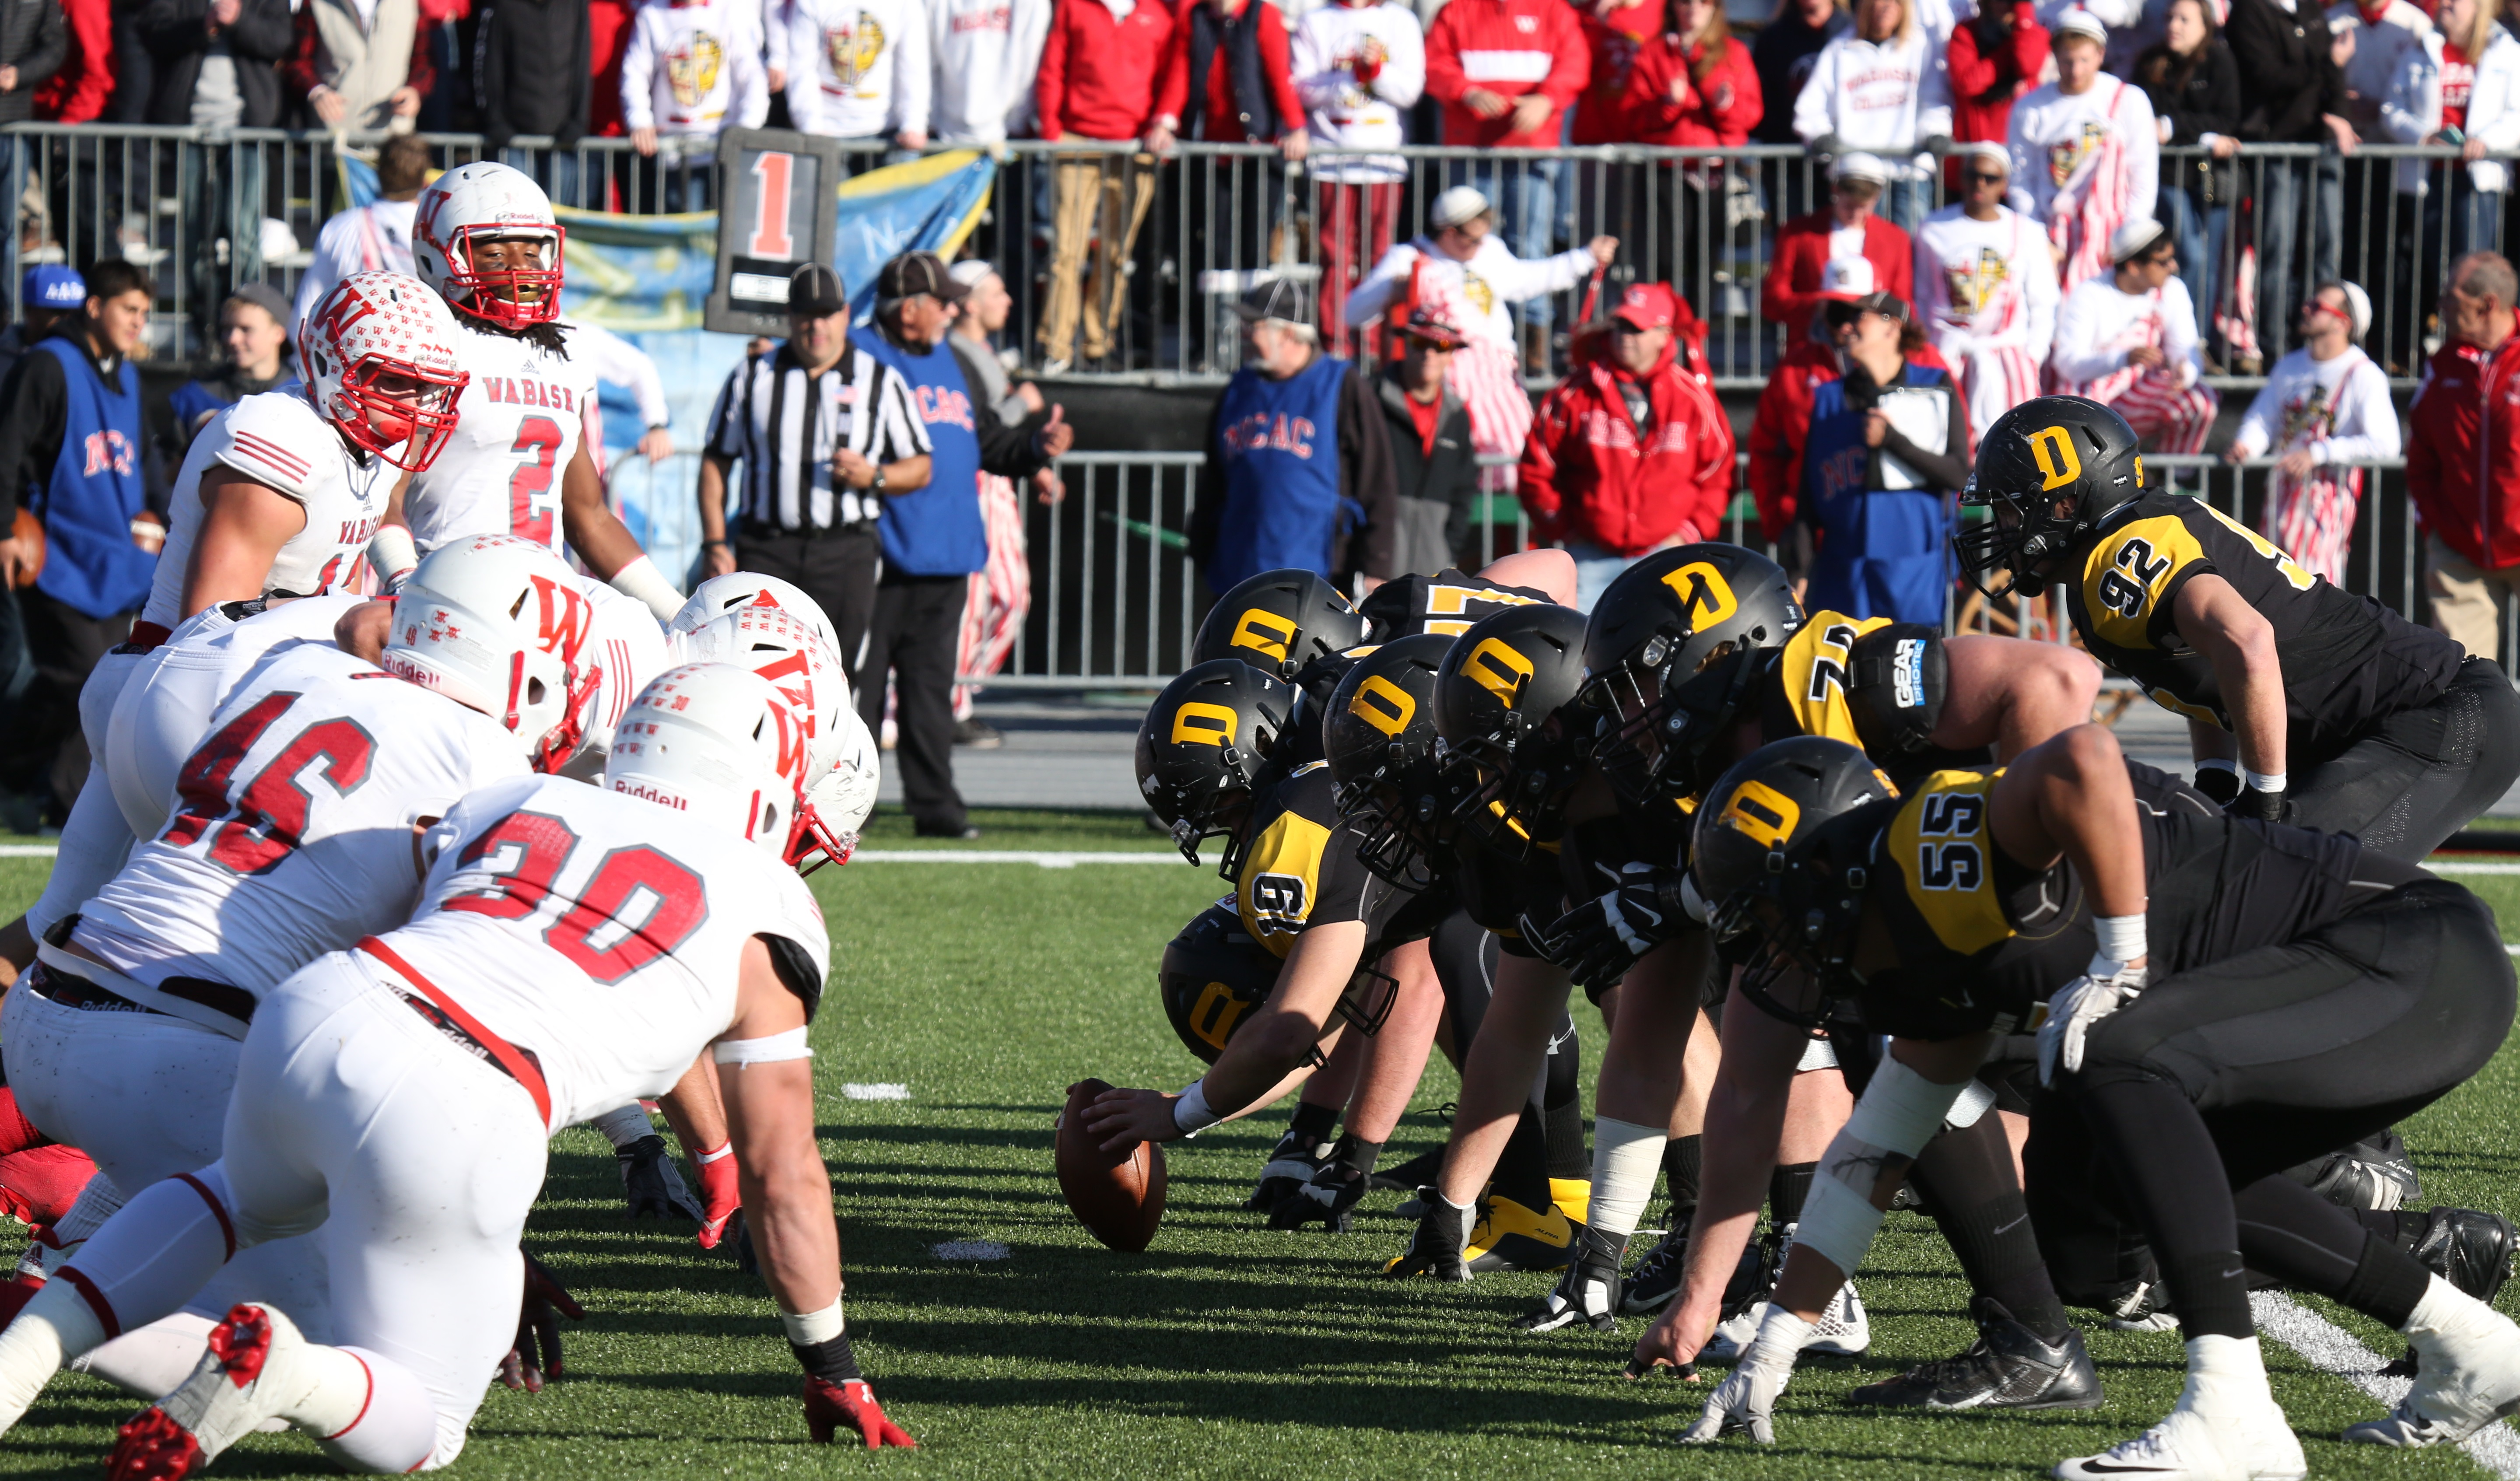 Game photos courtesy of DePauw University Photographic Services.